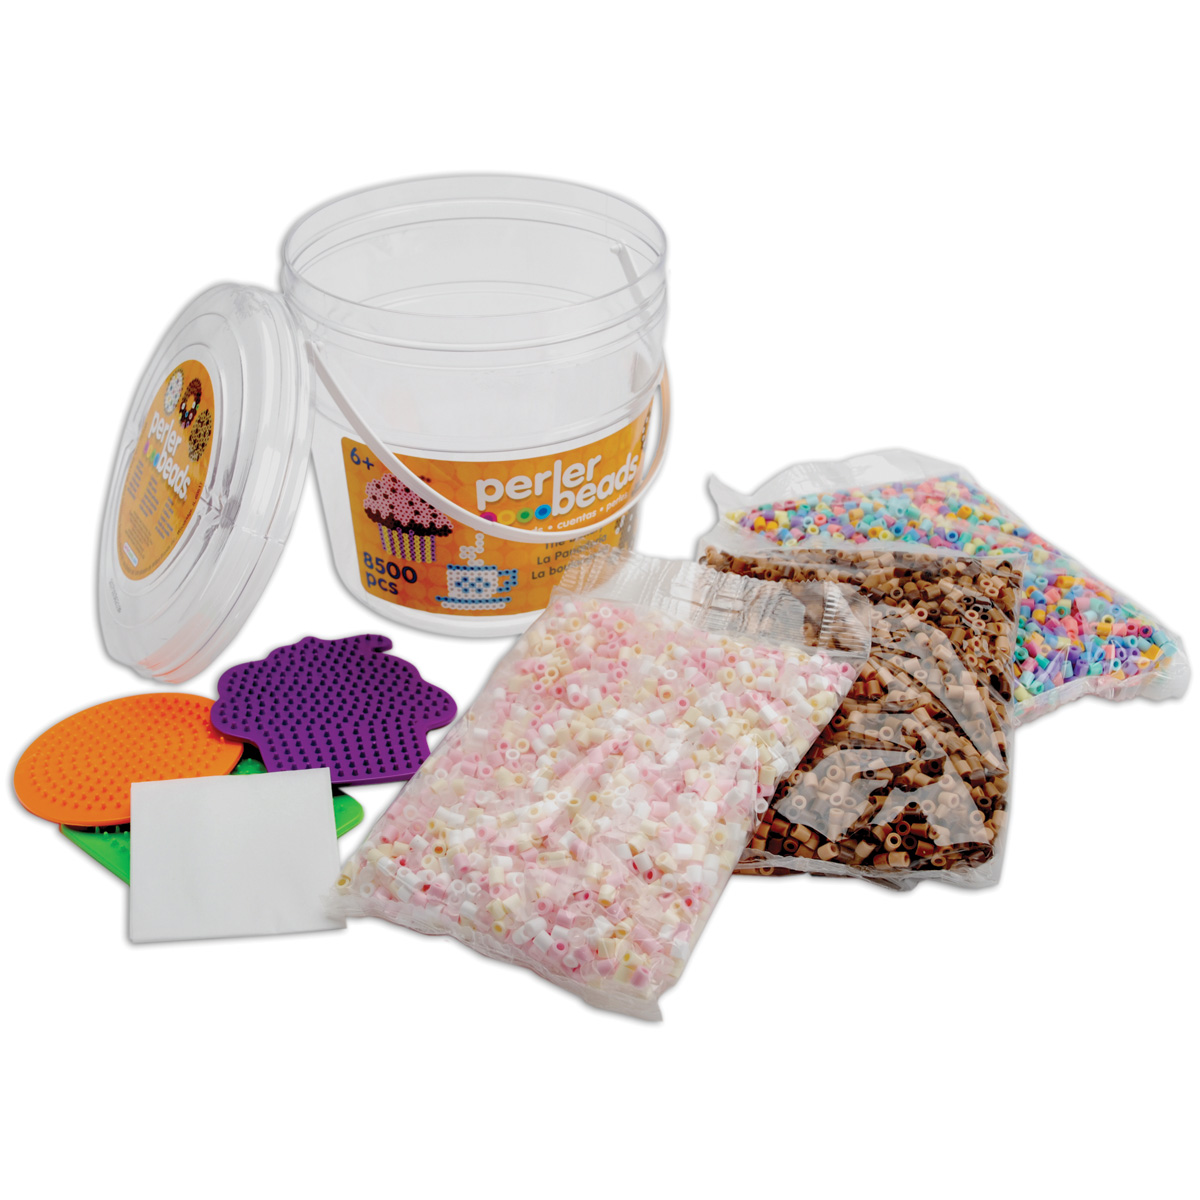 Perler Fuse Bead Activity Bucket-Bakery